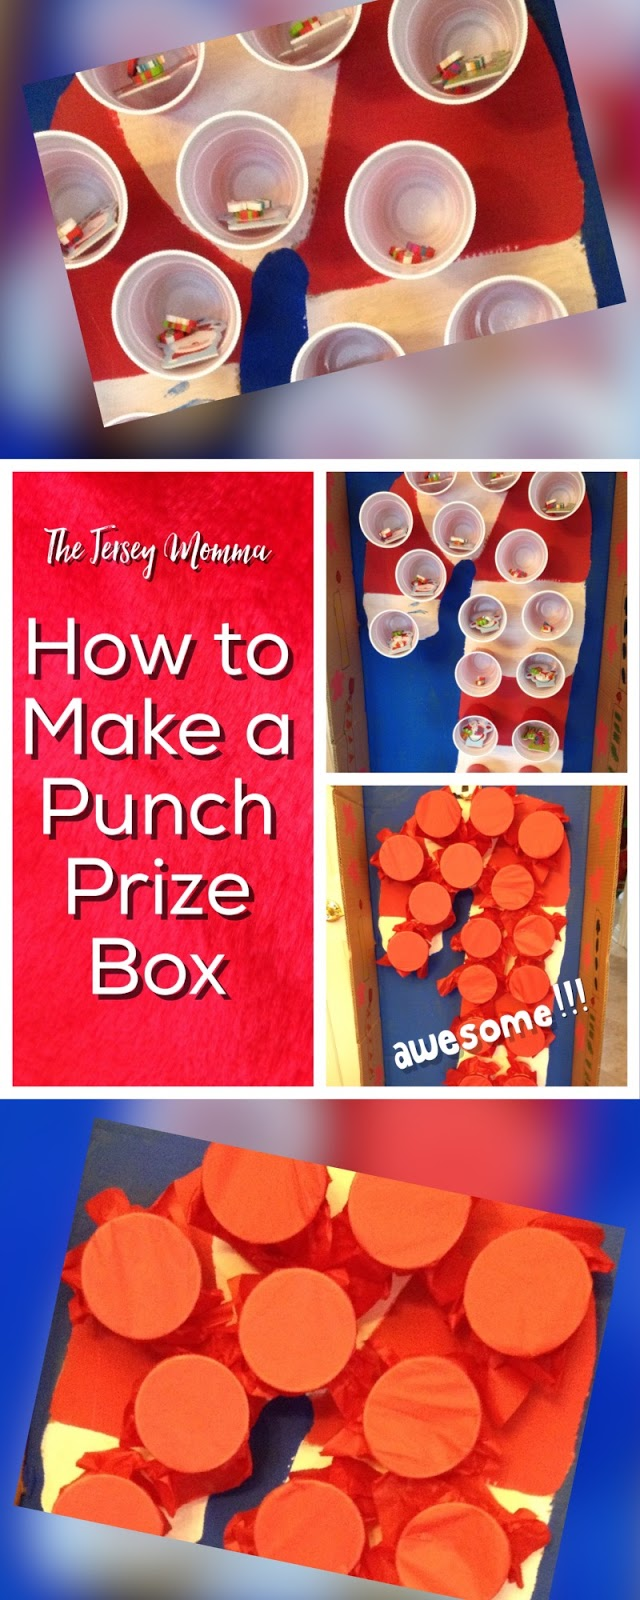 Classroom Prize Ideas : The jersey momma how to make a punch prize box for class